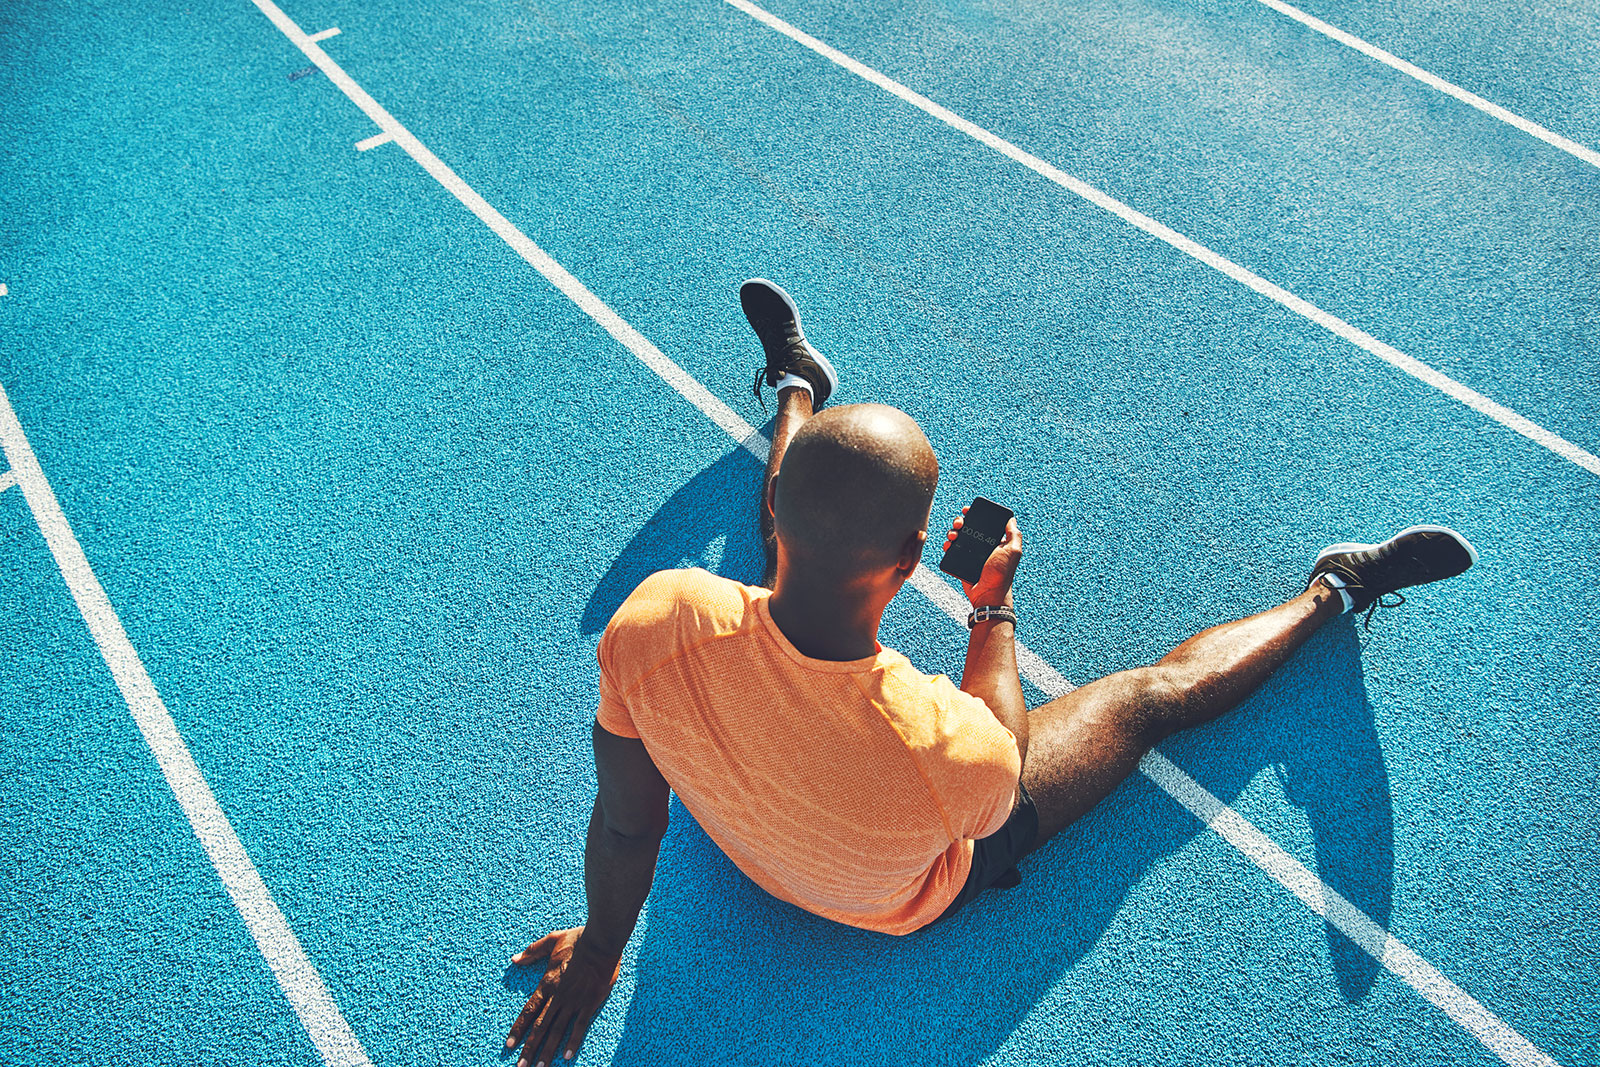 Personal Trainer Level Up Certification - High Intensity Training Certification